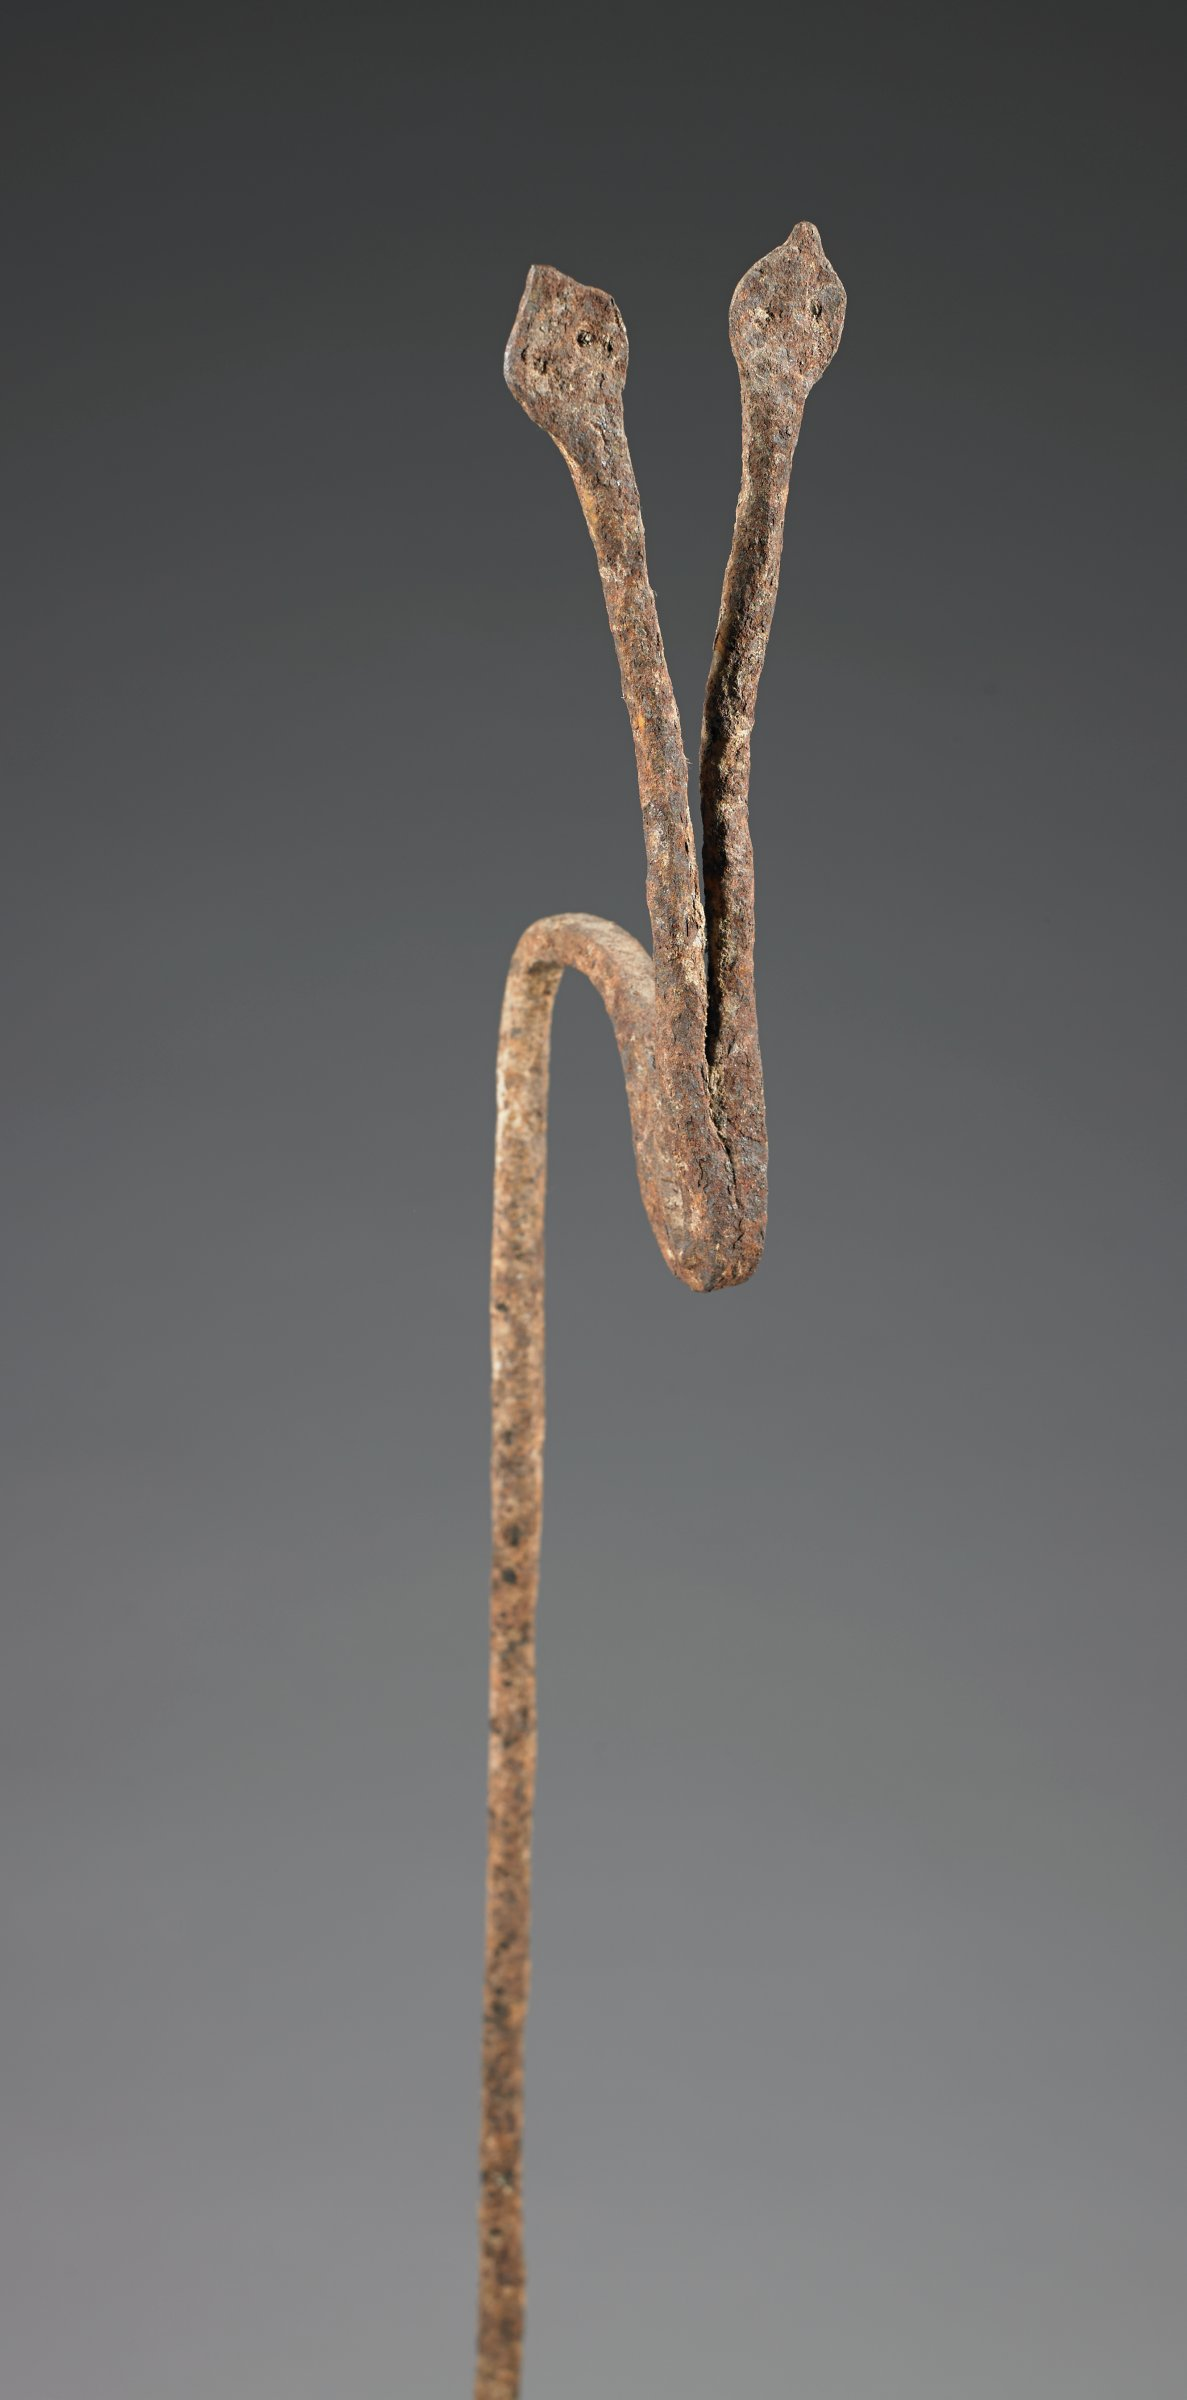 Staff with v-shaped finial in form of two snakes